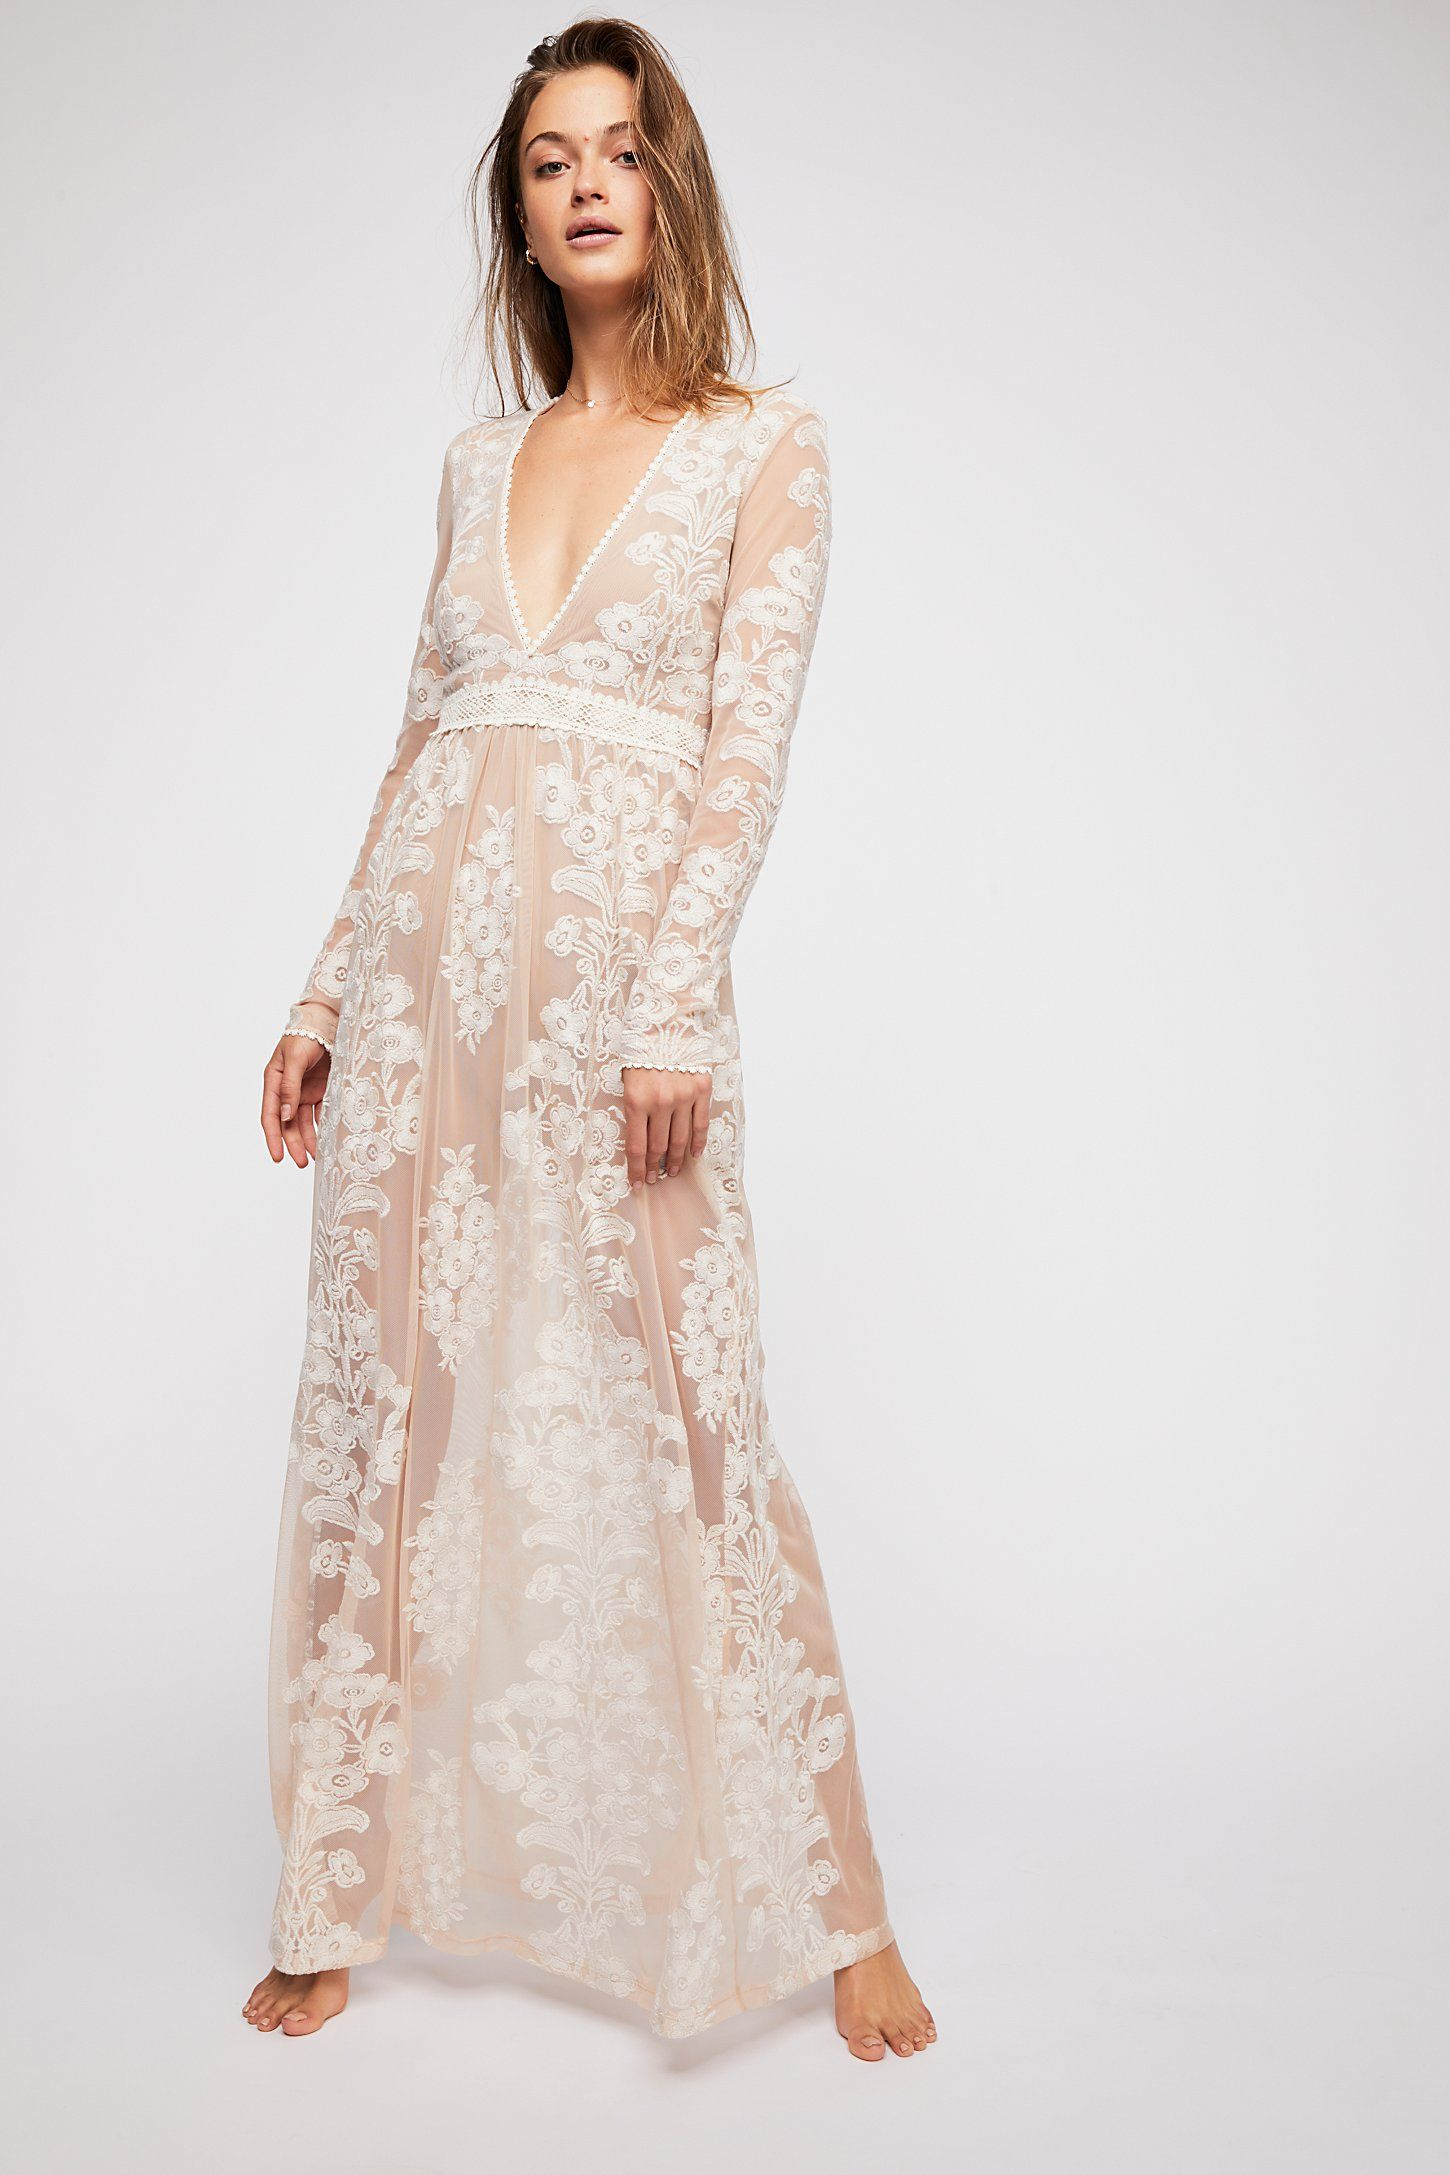 Temecula Maxi Dress in 2019  611a749670